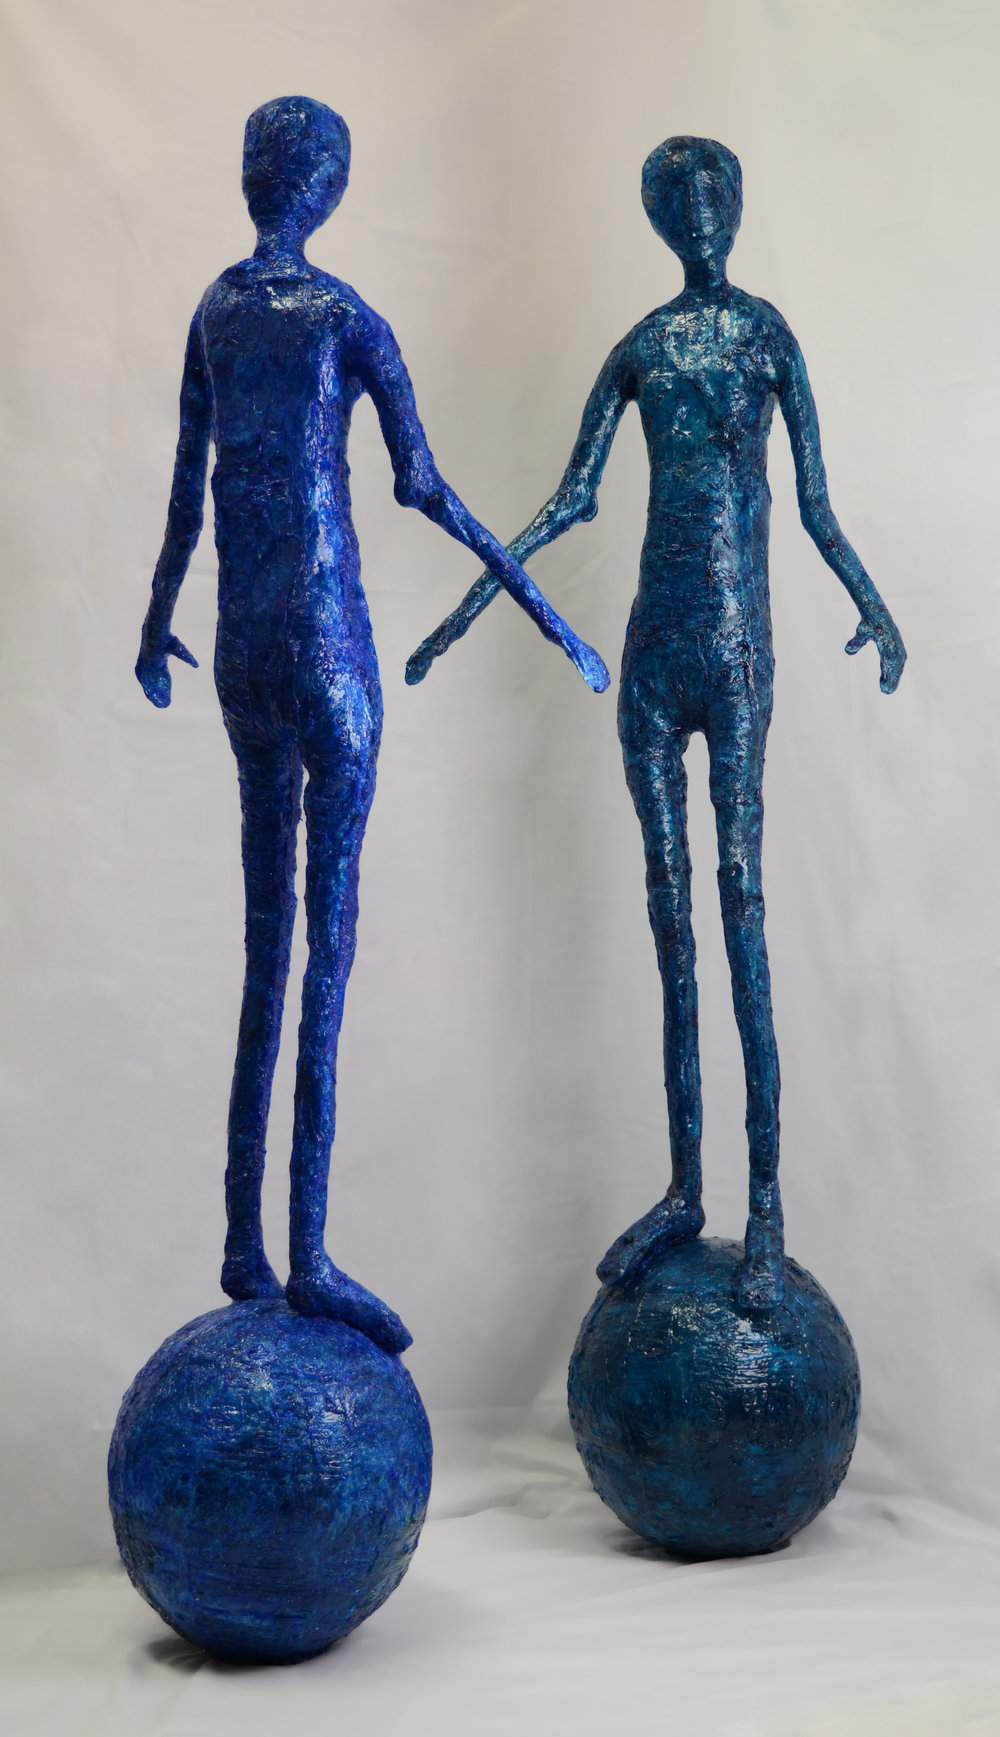 Elisabeth Weissensteiner,  Bright Blue & Dark Blue Dancer Balancing , 2011, polyester resin, fibreglass and pigments, height 200cm